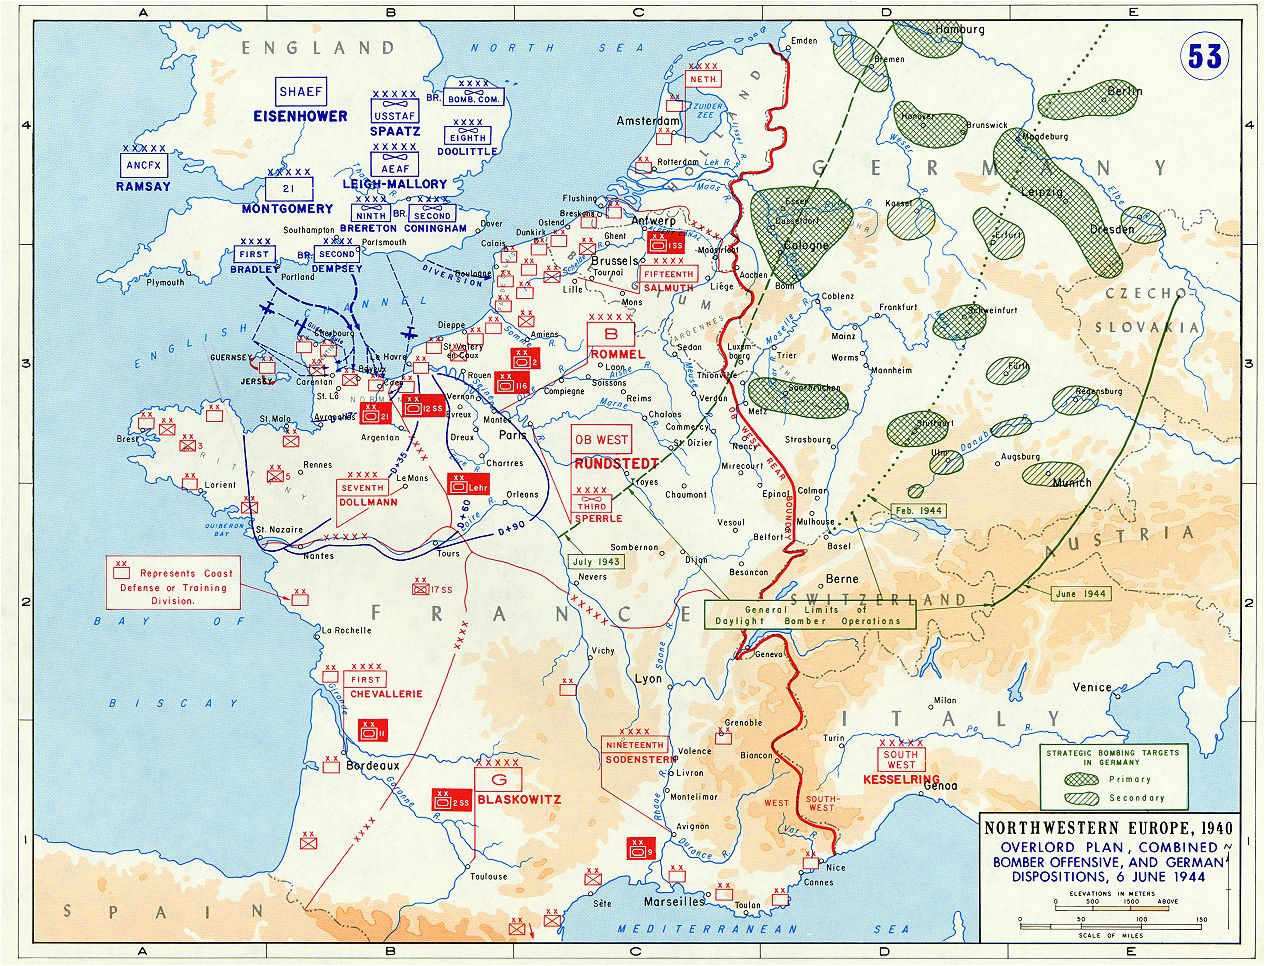 Battle Of France Map Overlord Plan Combined Bomber Offensive and German Dispositions 6